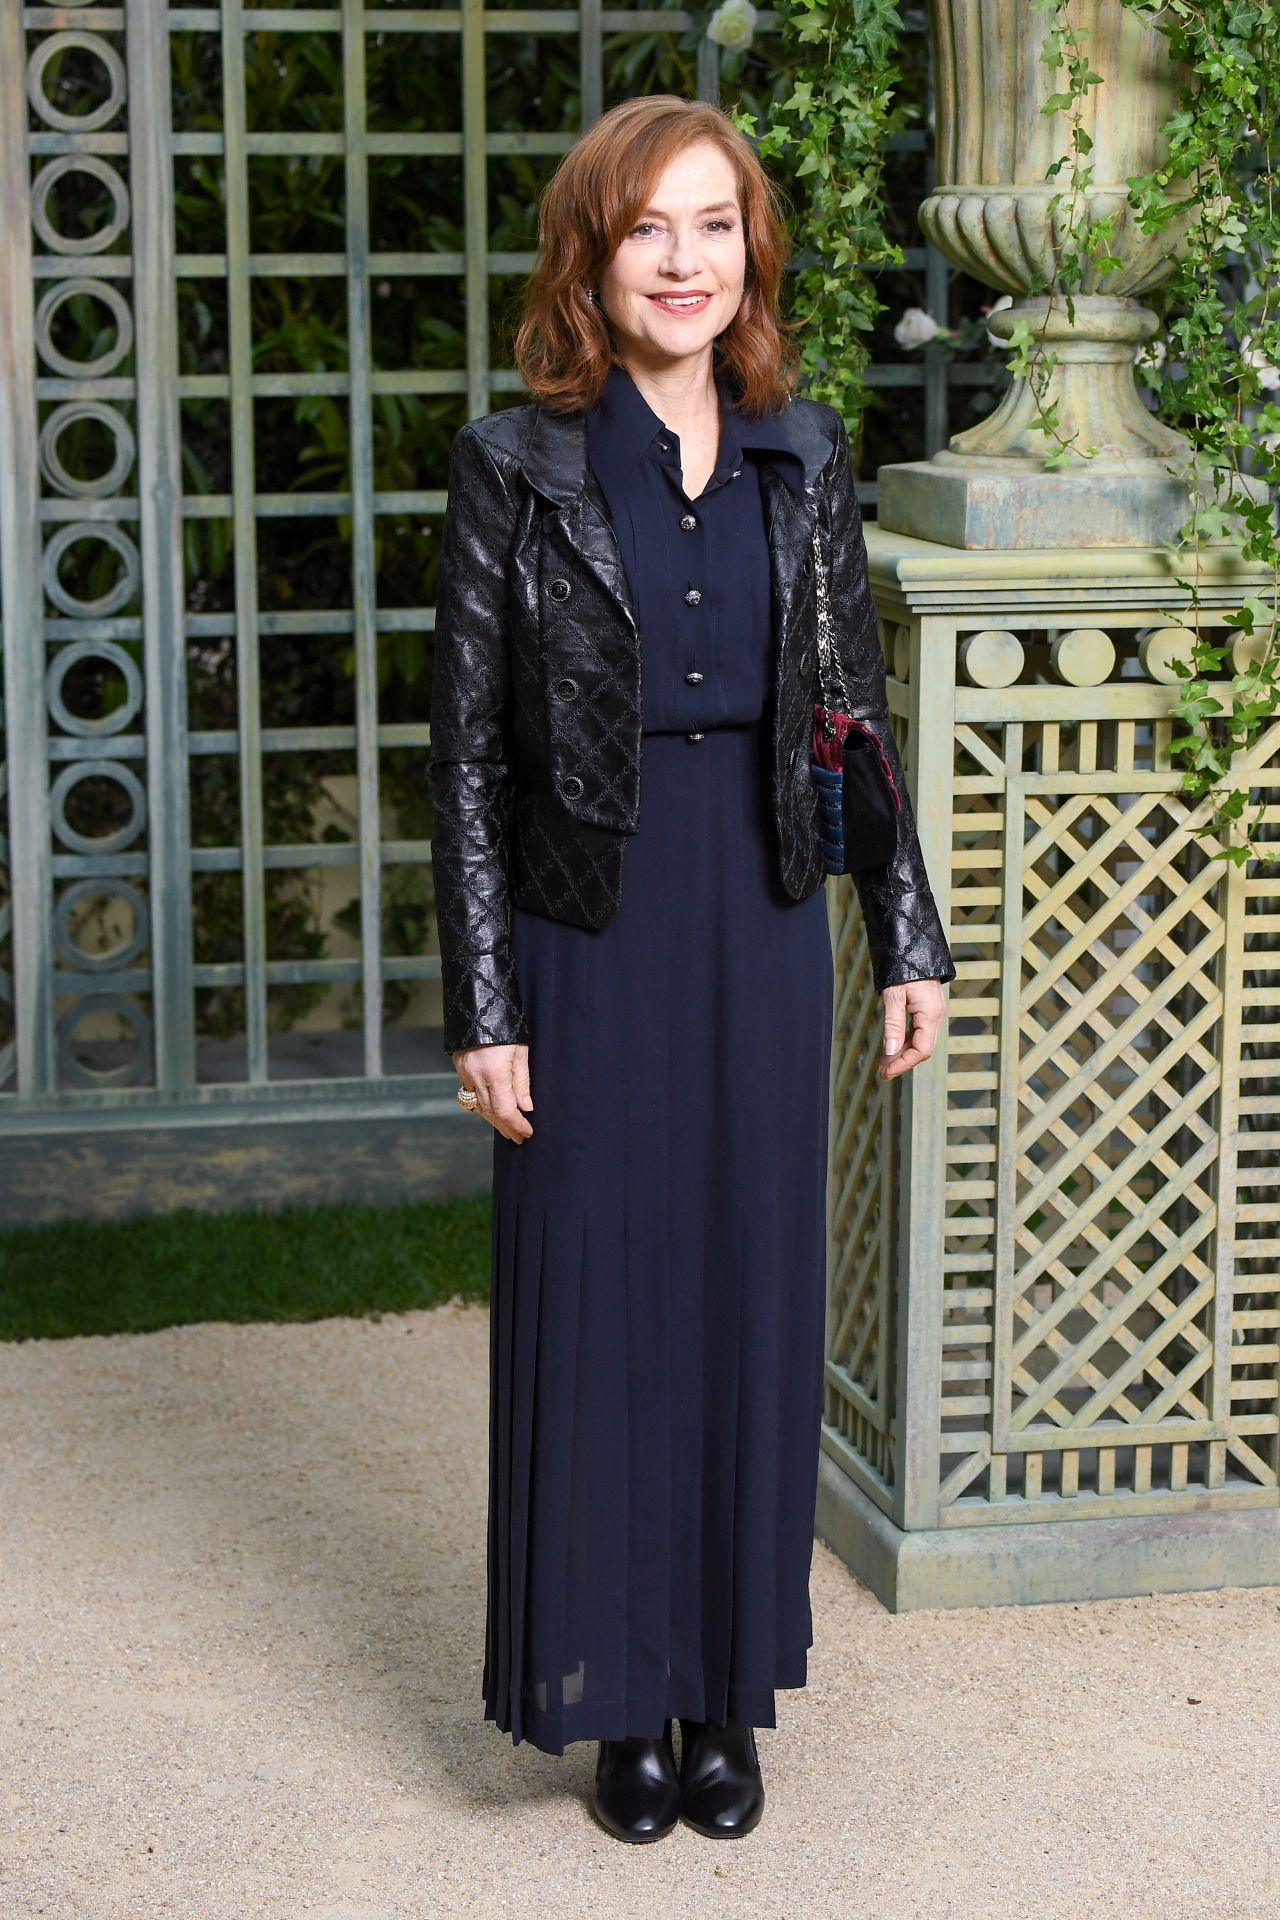 http://celebmafia.com/wp-content/uploads/2018/01/isabelle-huppert-at-chanel-paris-fashion-week-january-2018-6.jpg